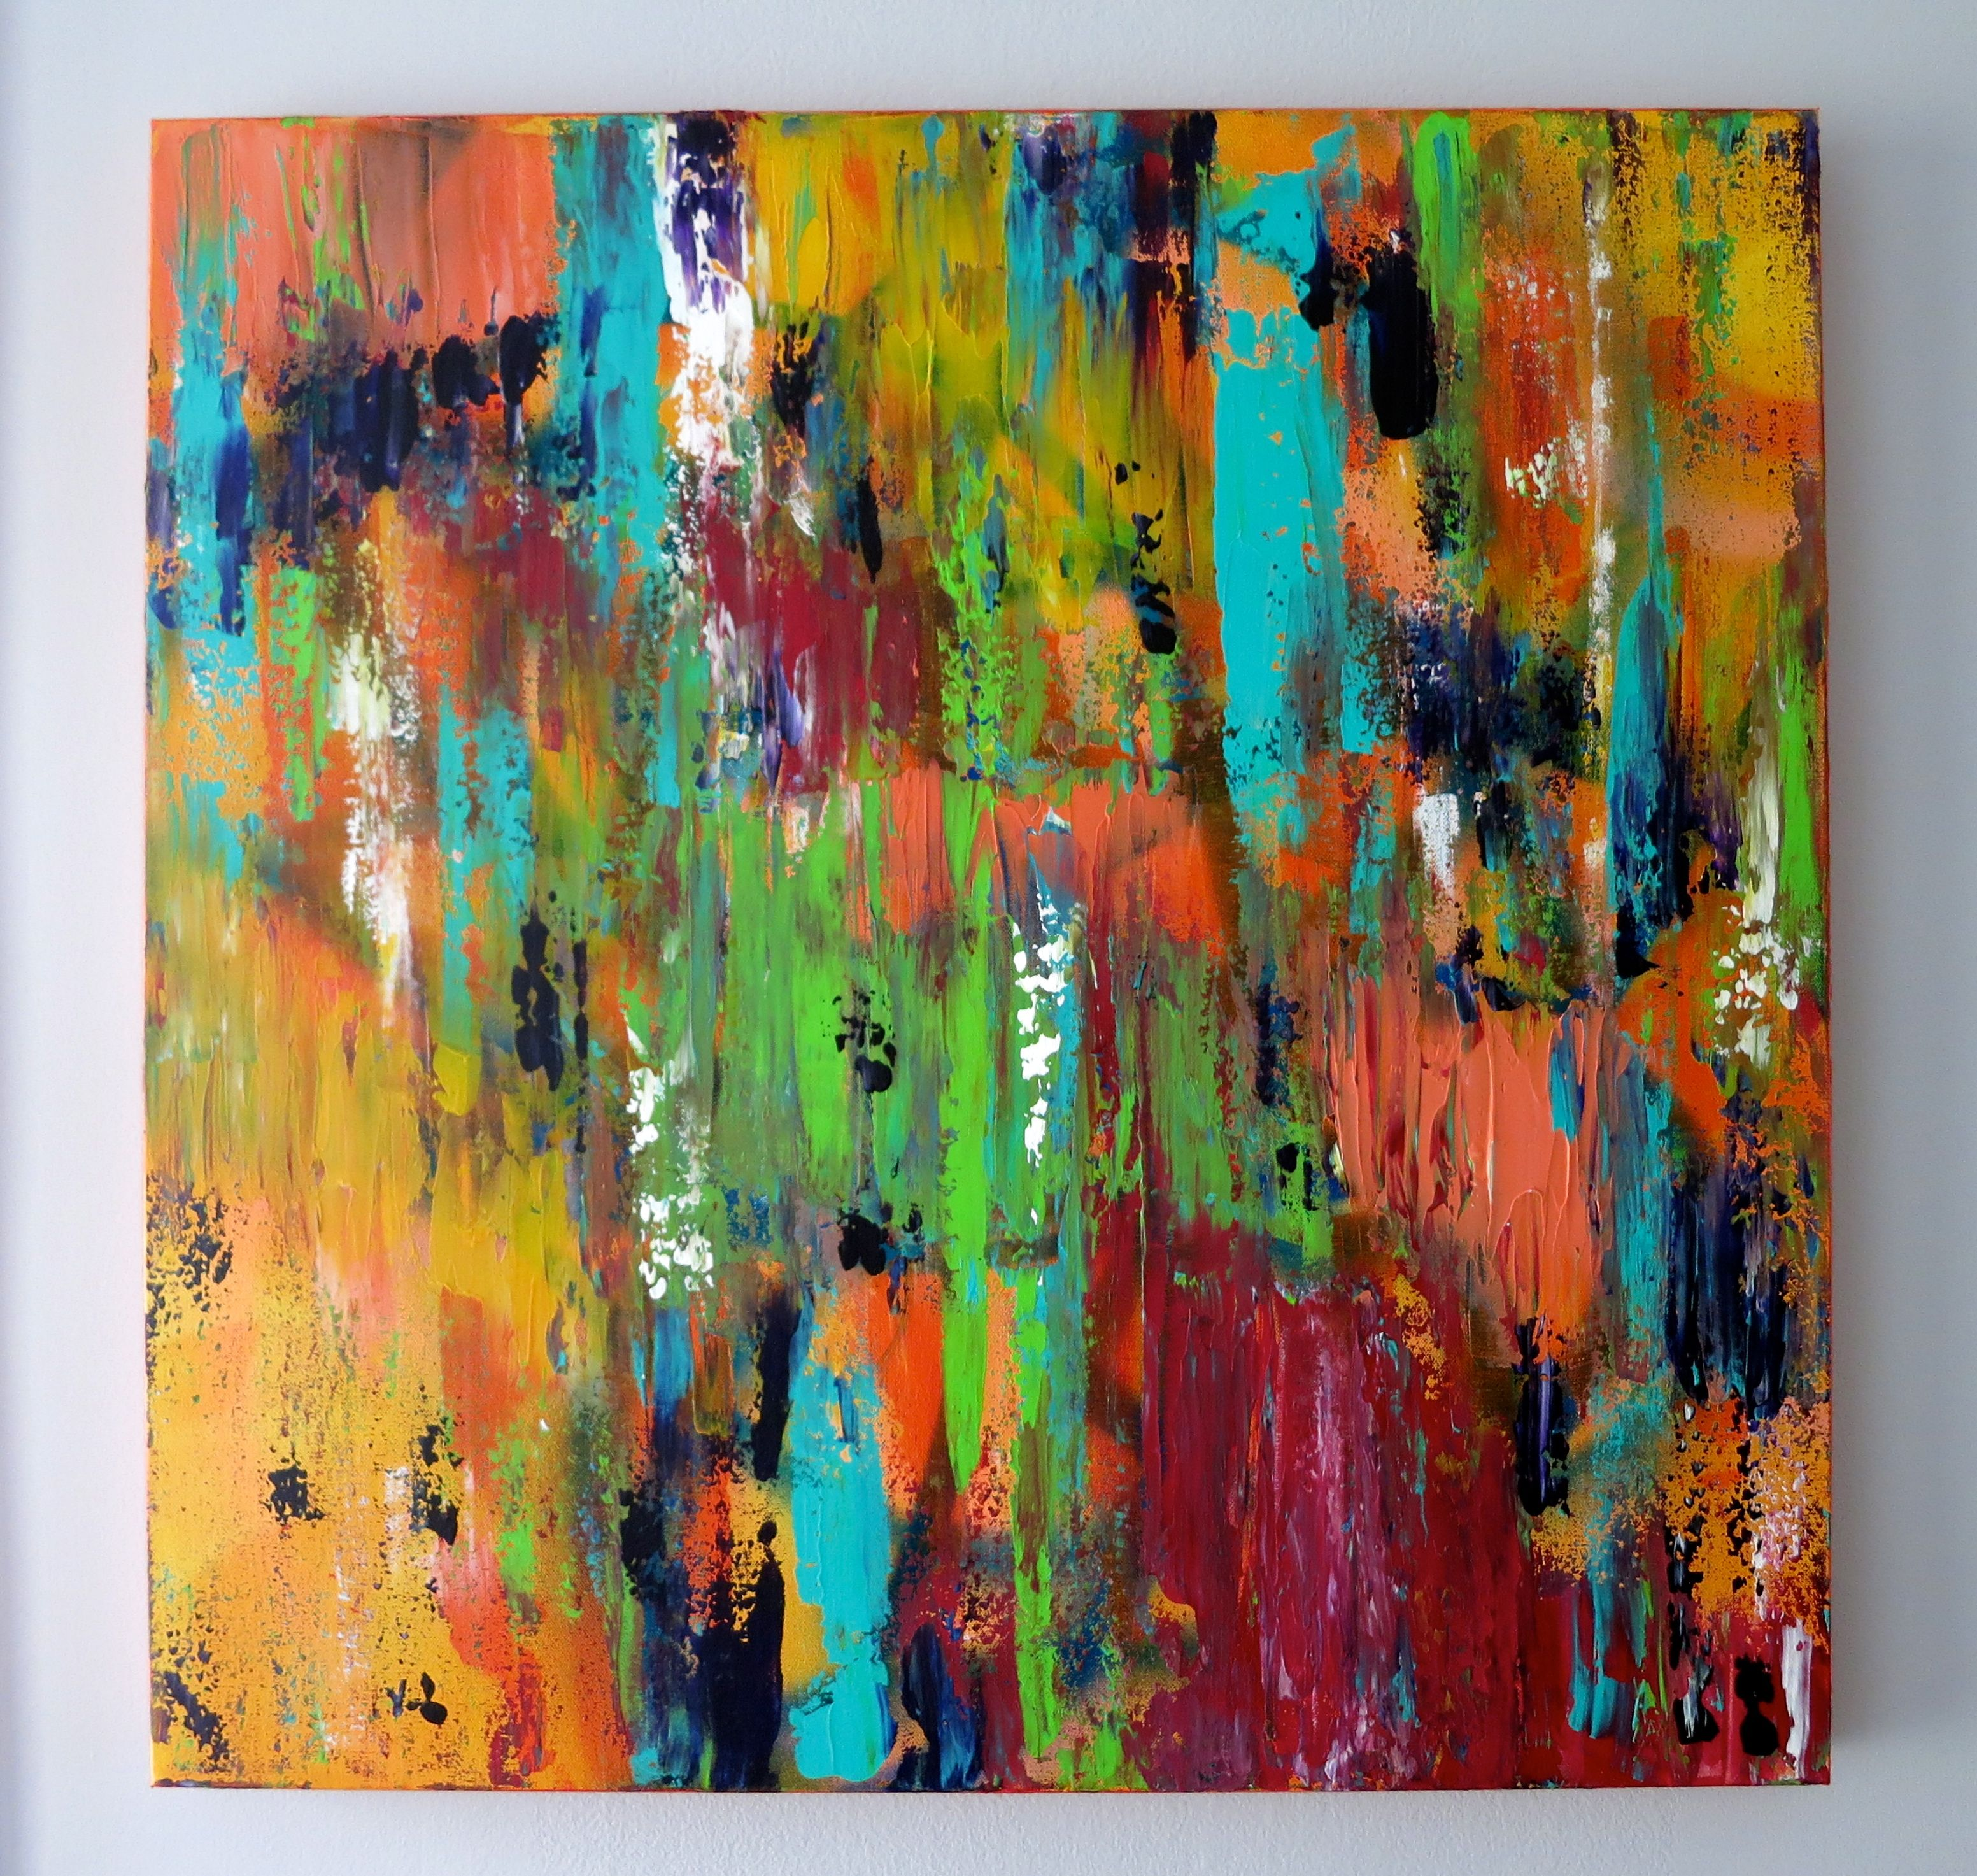 Yellow Aqua Blue Red Pink Orange Bright Abstract Colorful Acrylic Paint Wall Decor Birthday Gift Funky Art Canvas Large Painting